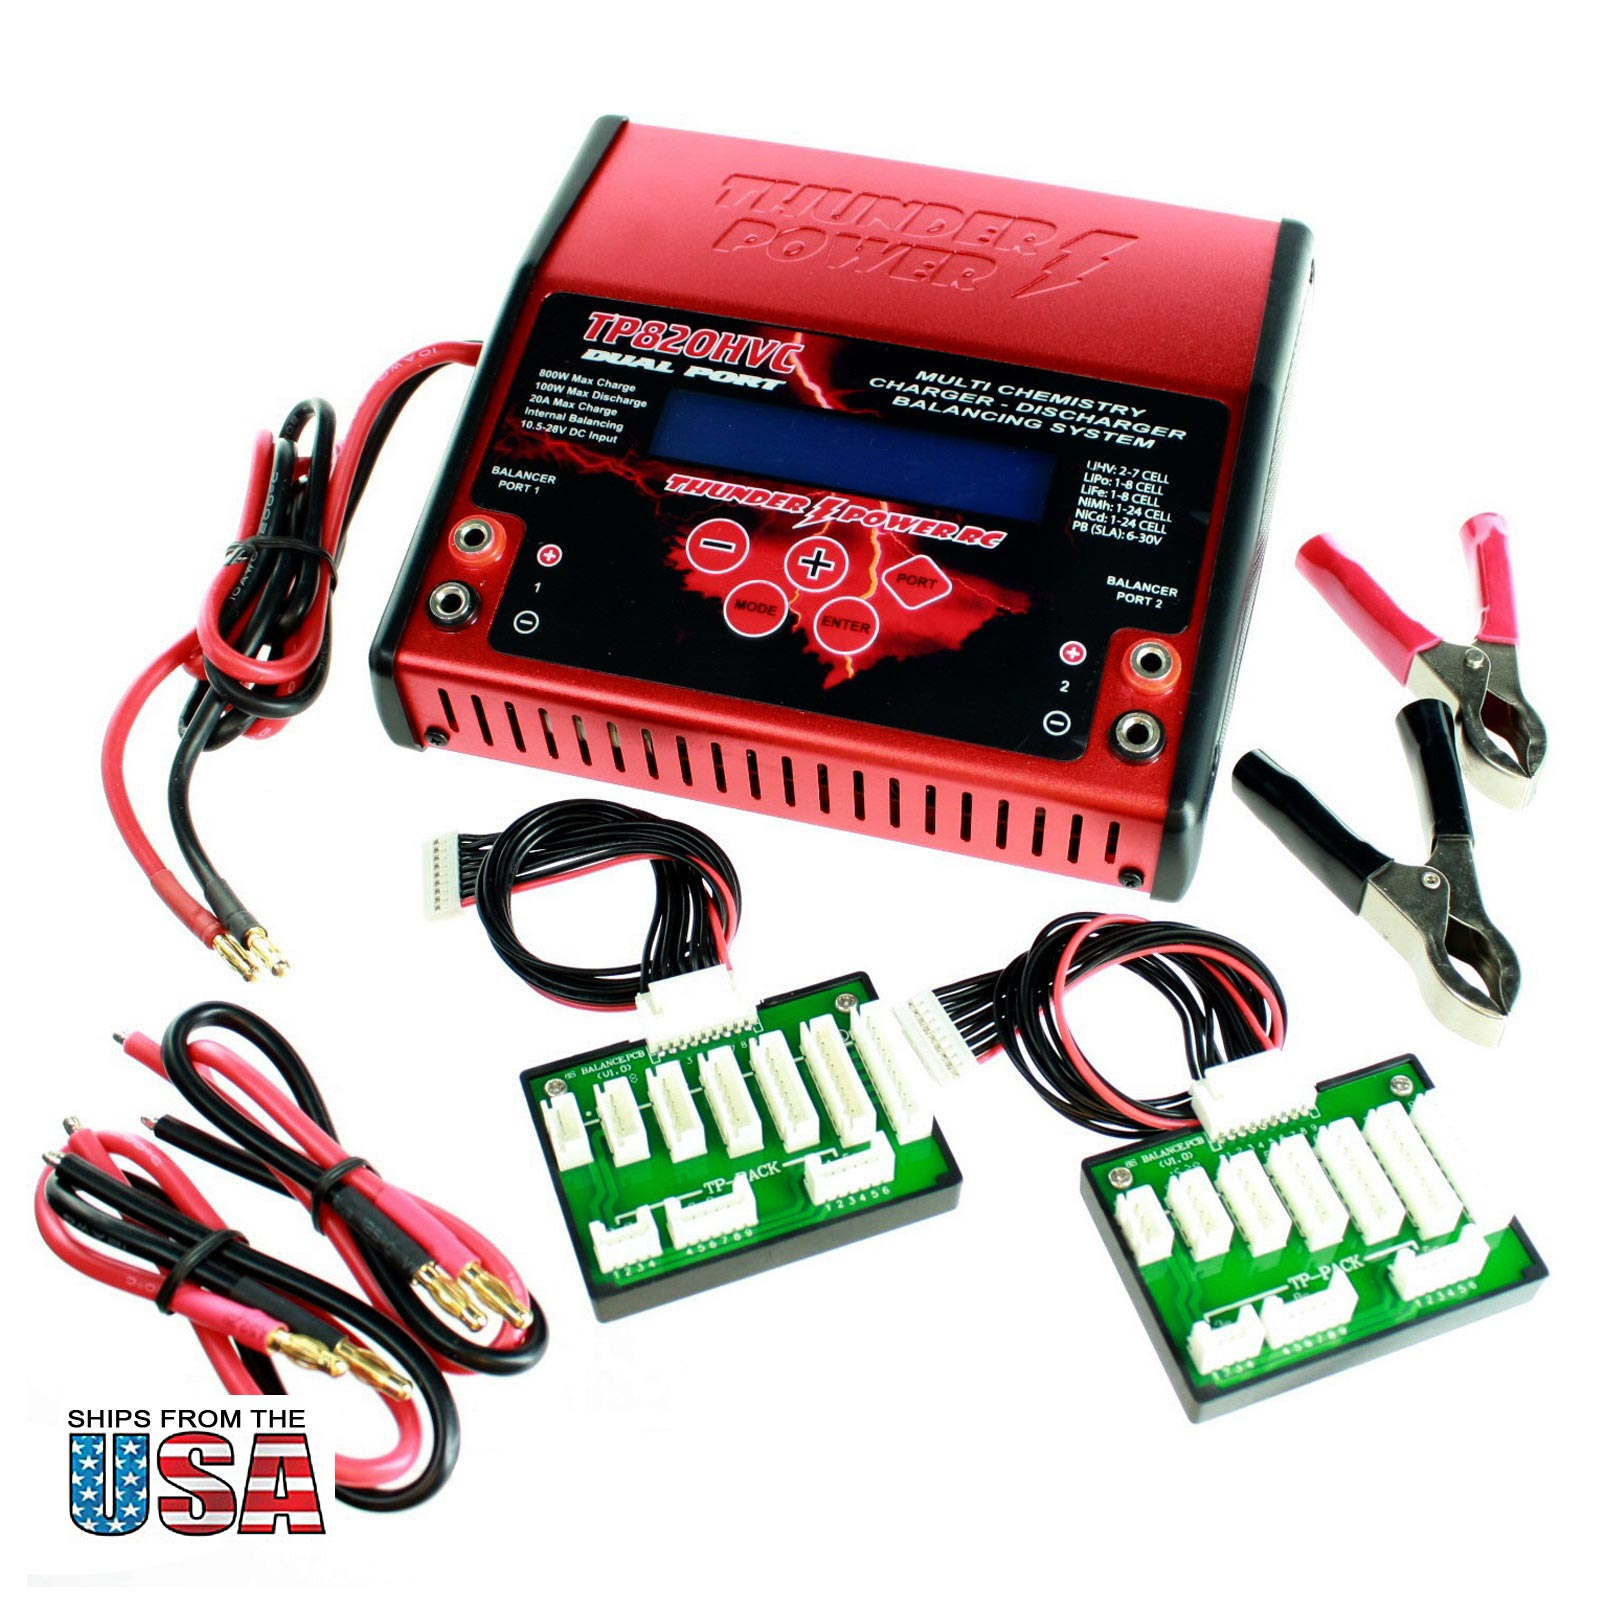 Battery Charger + 2 1800mAh Batteries For Pro RC Car/Tank